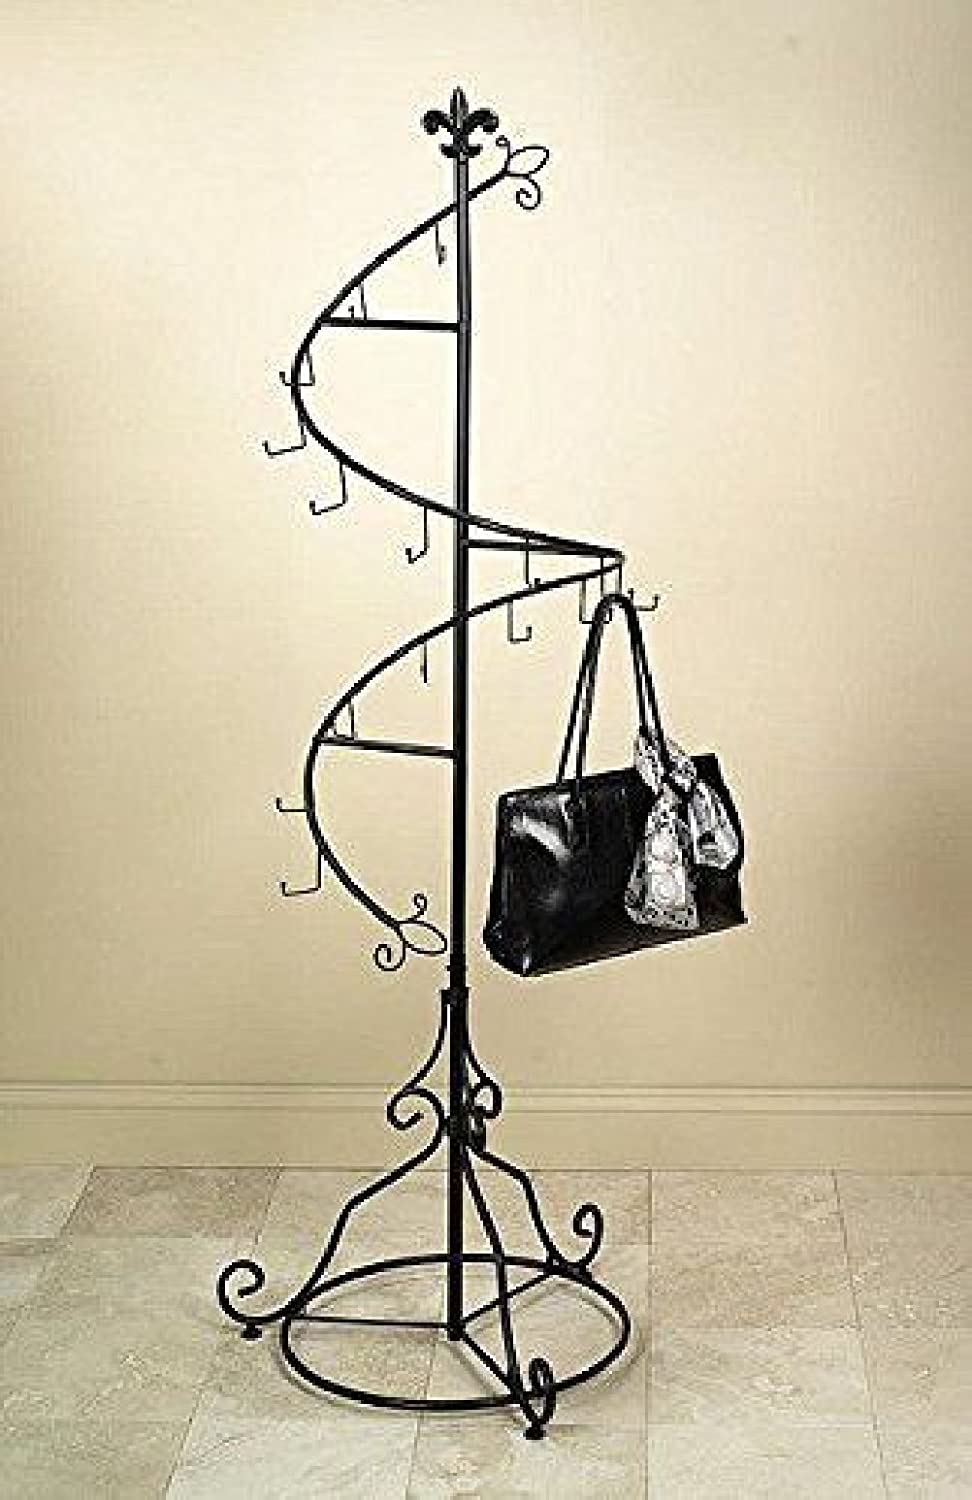 Tripar Brown Metal Display Purse Tree and Jewelry Organizer 74 Spiral Coat Hanger Bag Display Garment Rack Stand with 15 Hooks